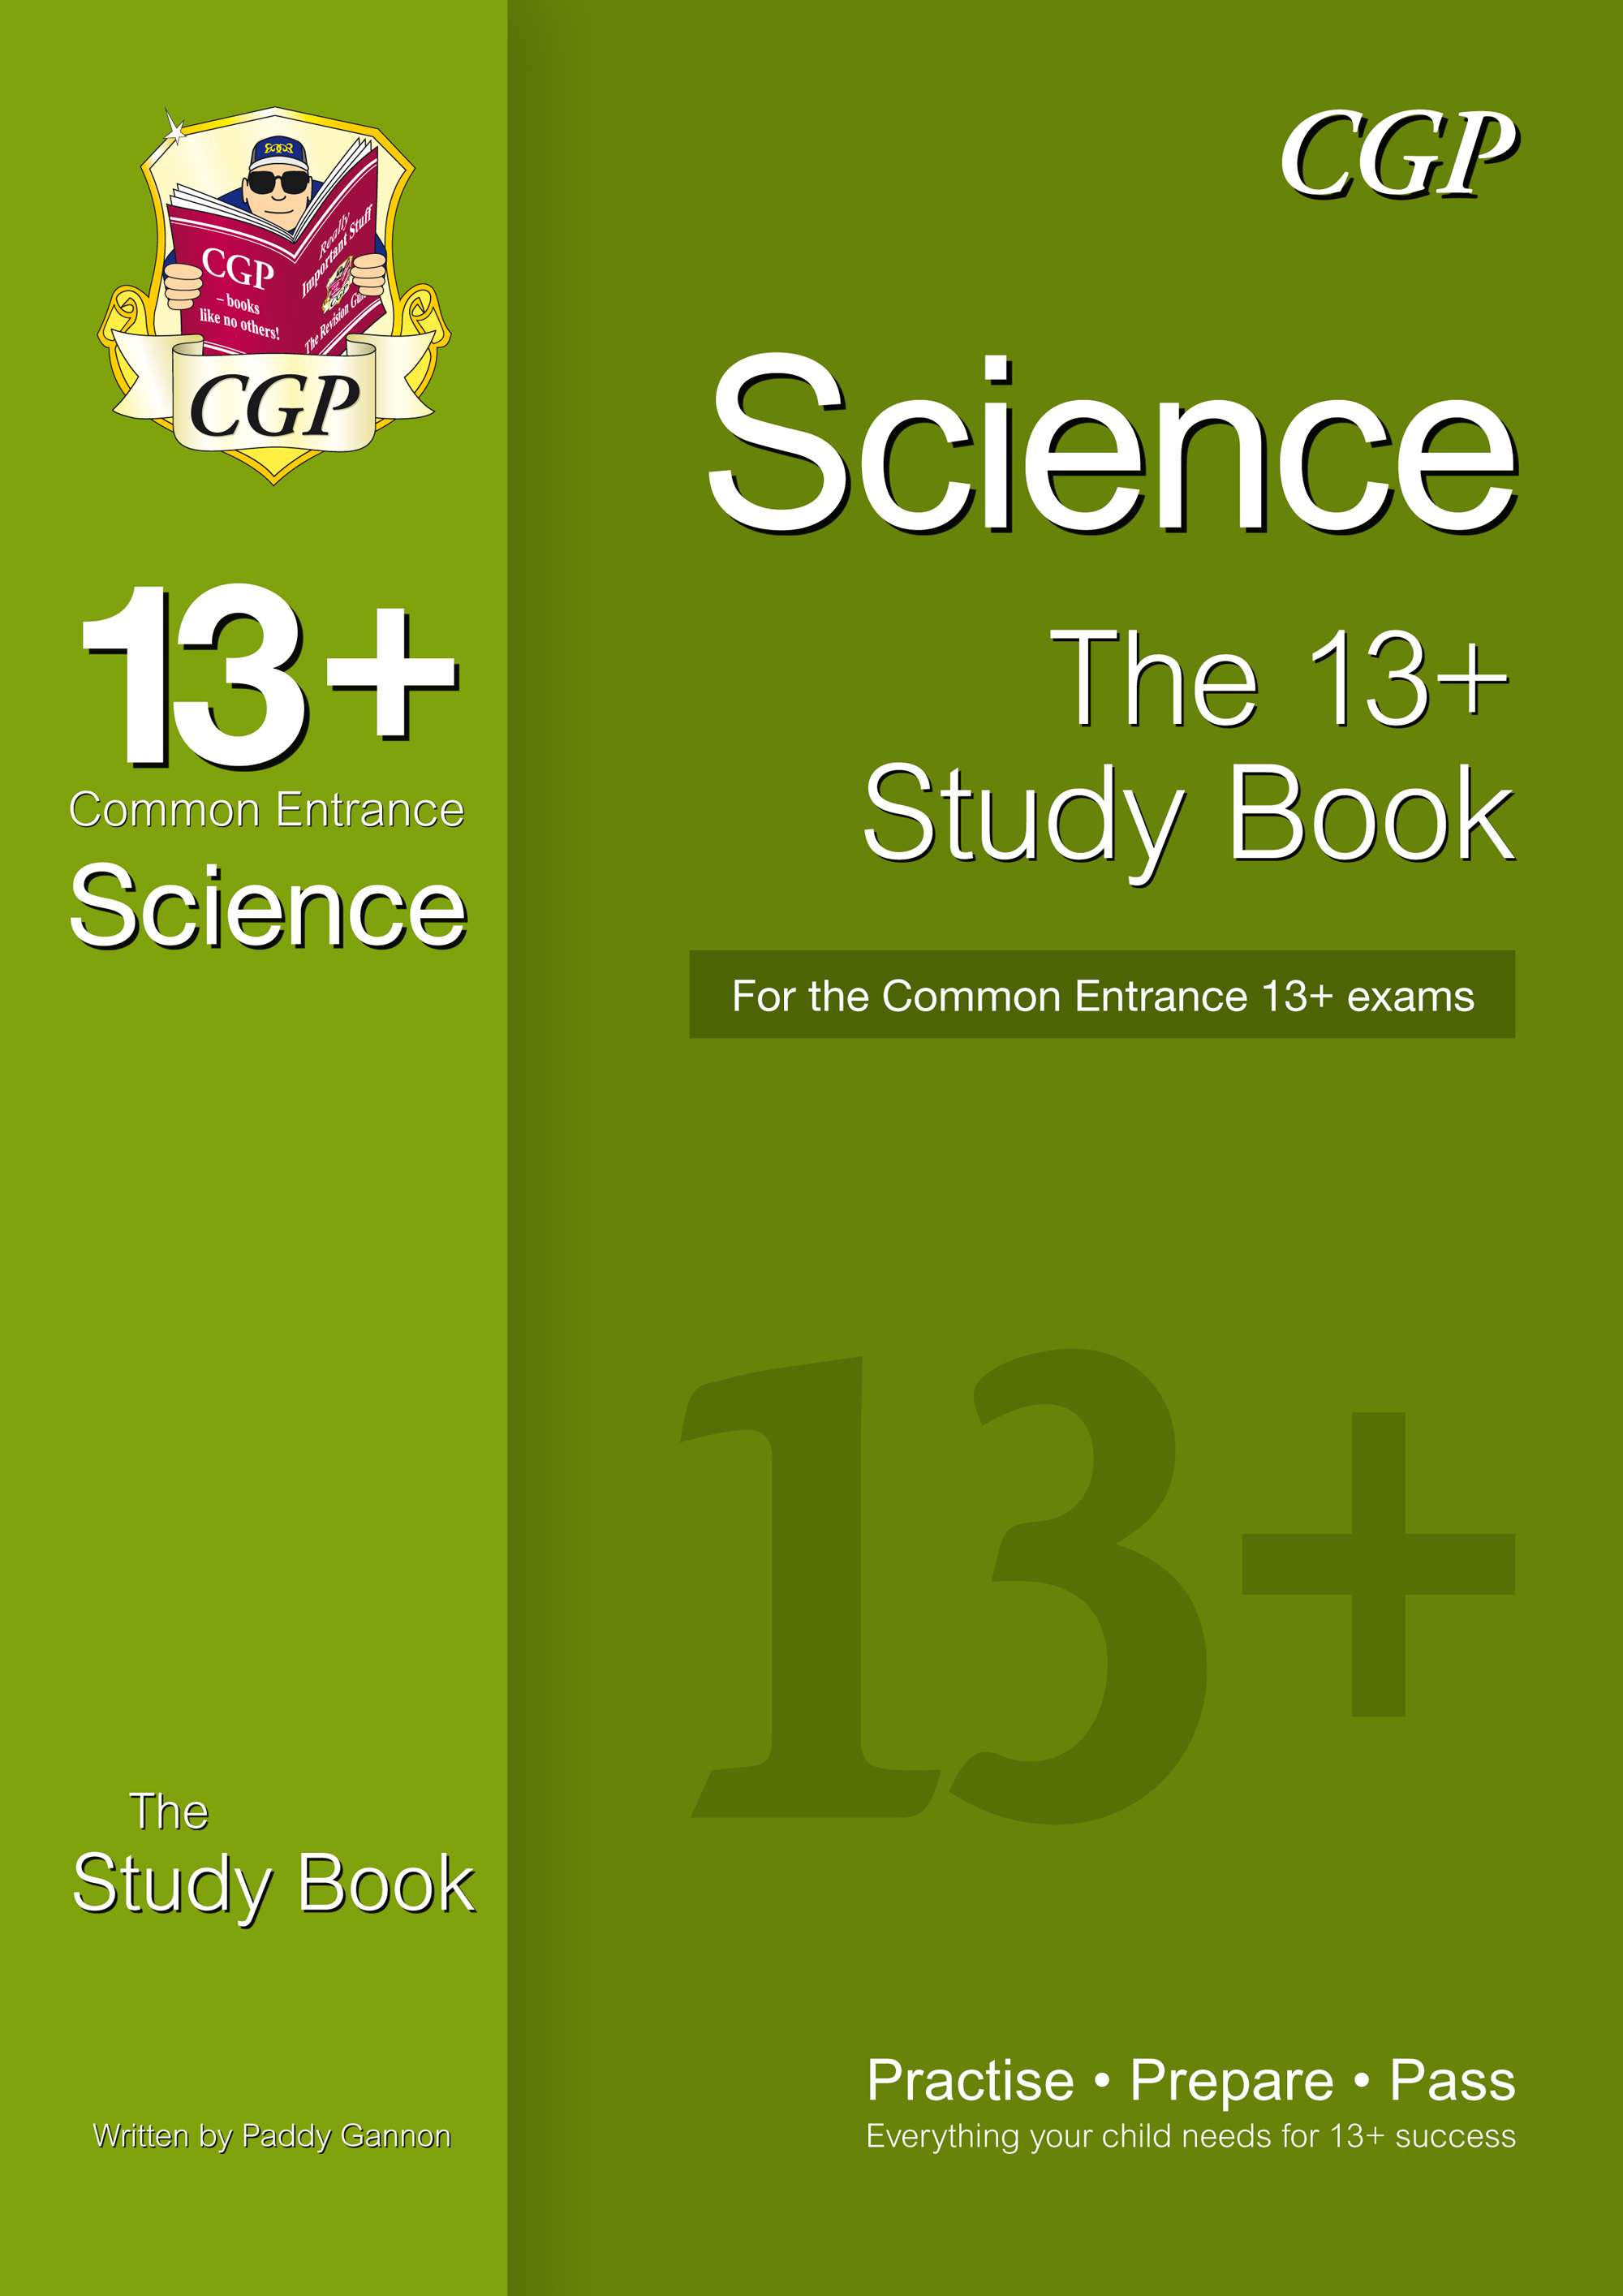 SIRT3 - New 13+ Science Study Book for the Common Entrance Exams